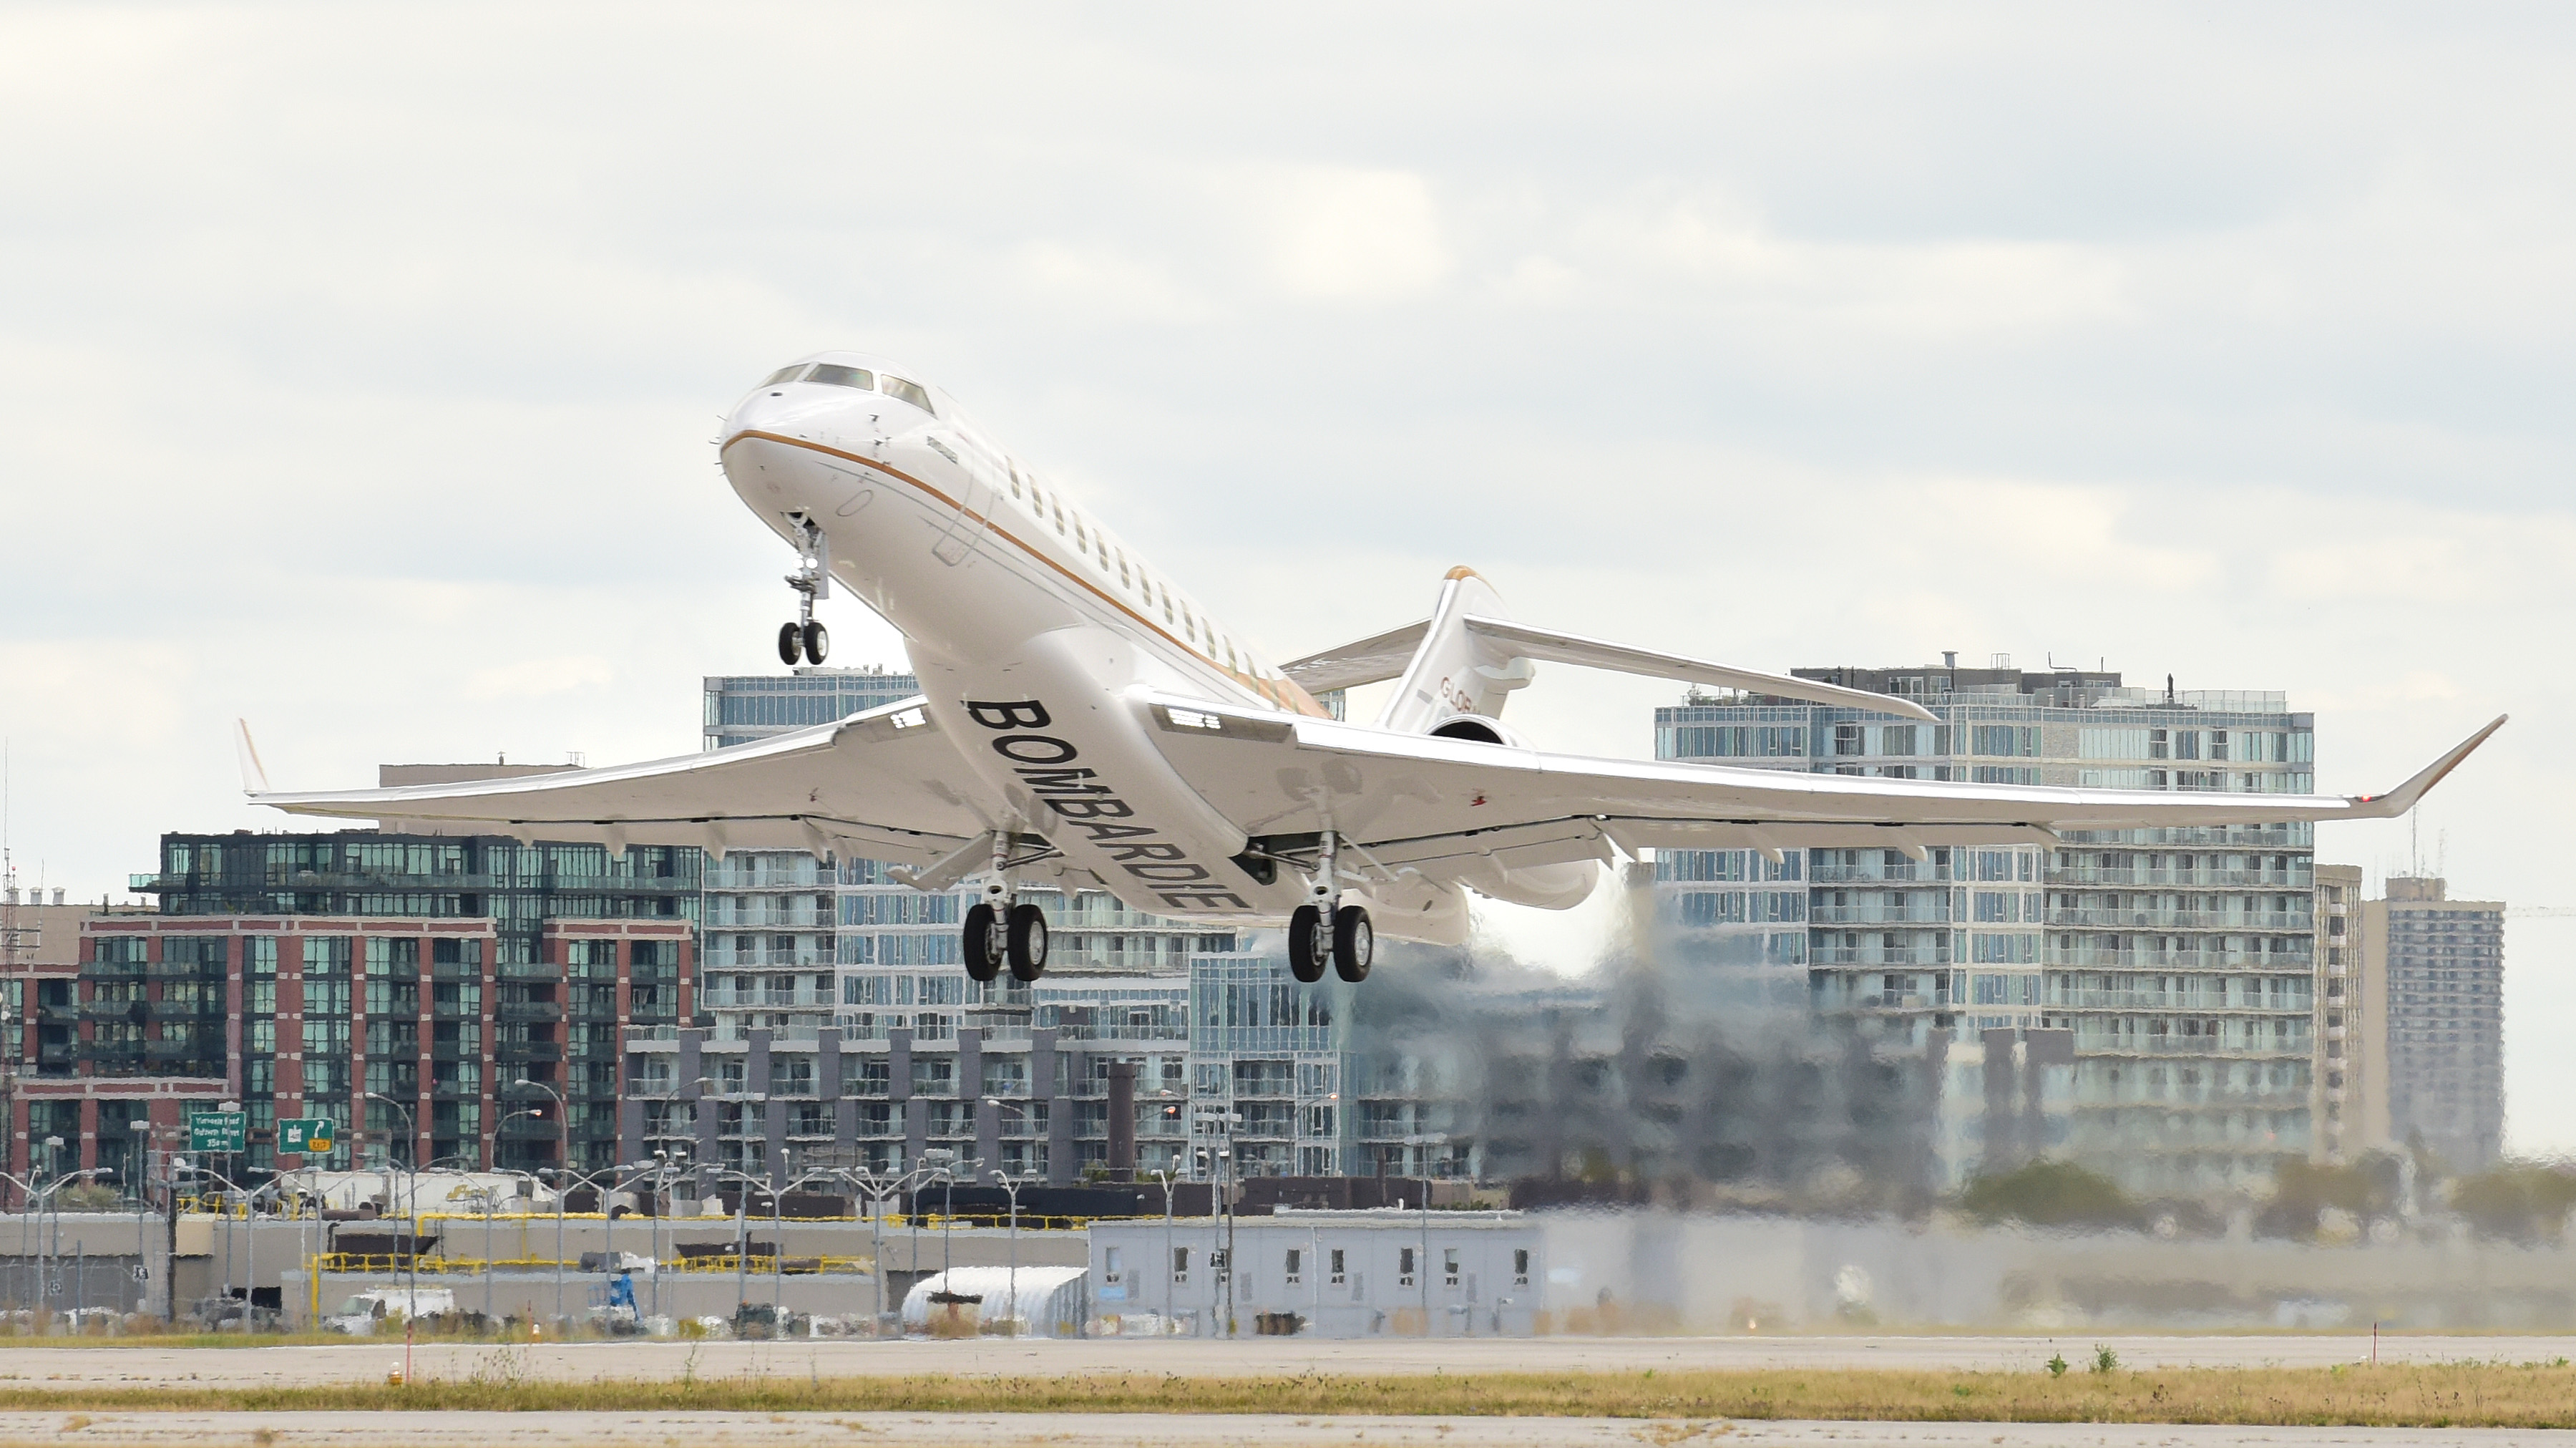 The fourth Global 7000 aircraft ascended into clear skies from one of Bombardier's runways in Toronto, Ont.